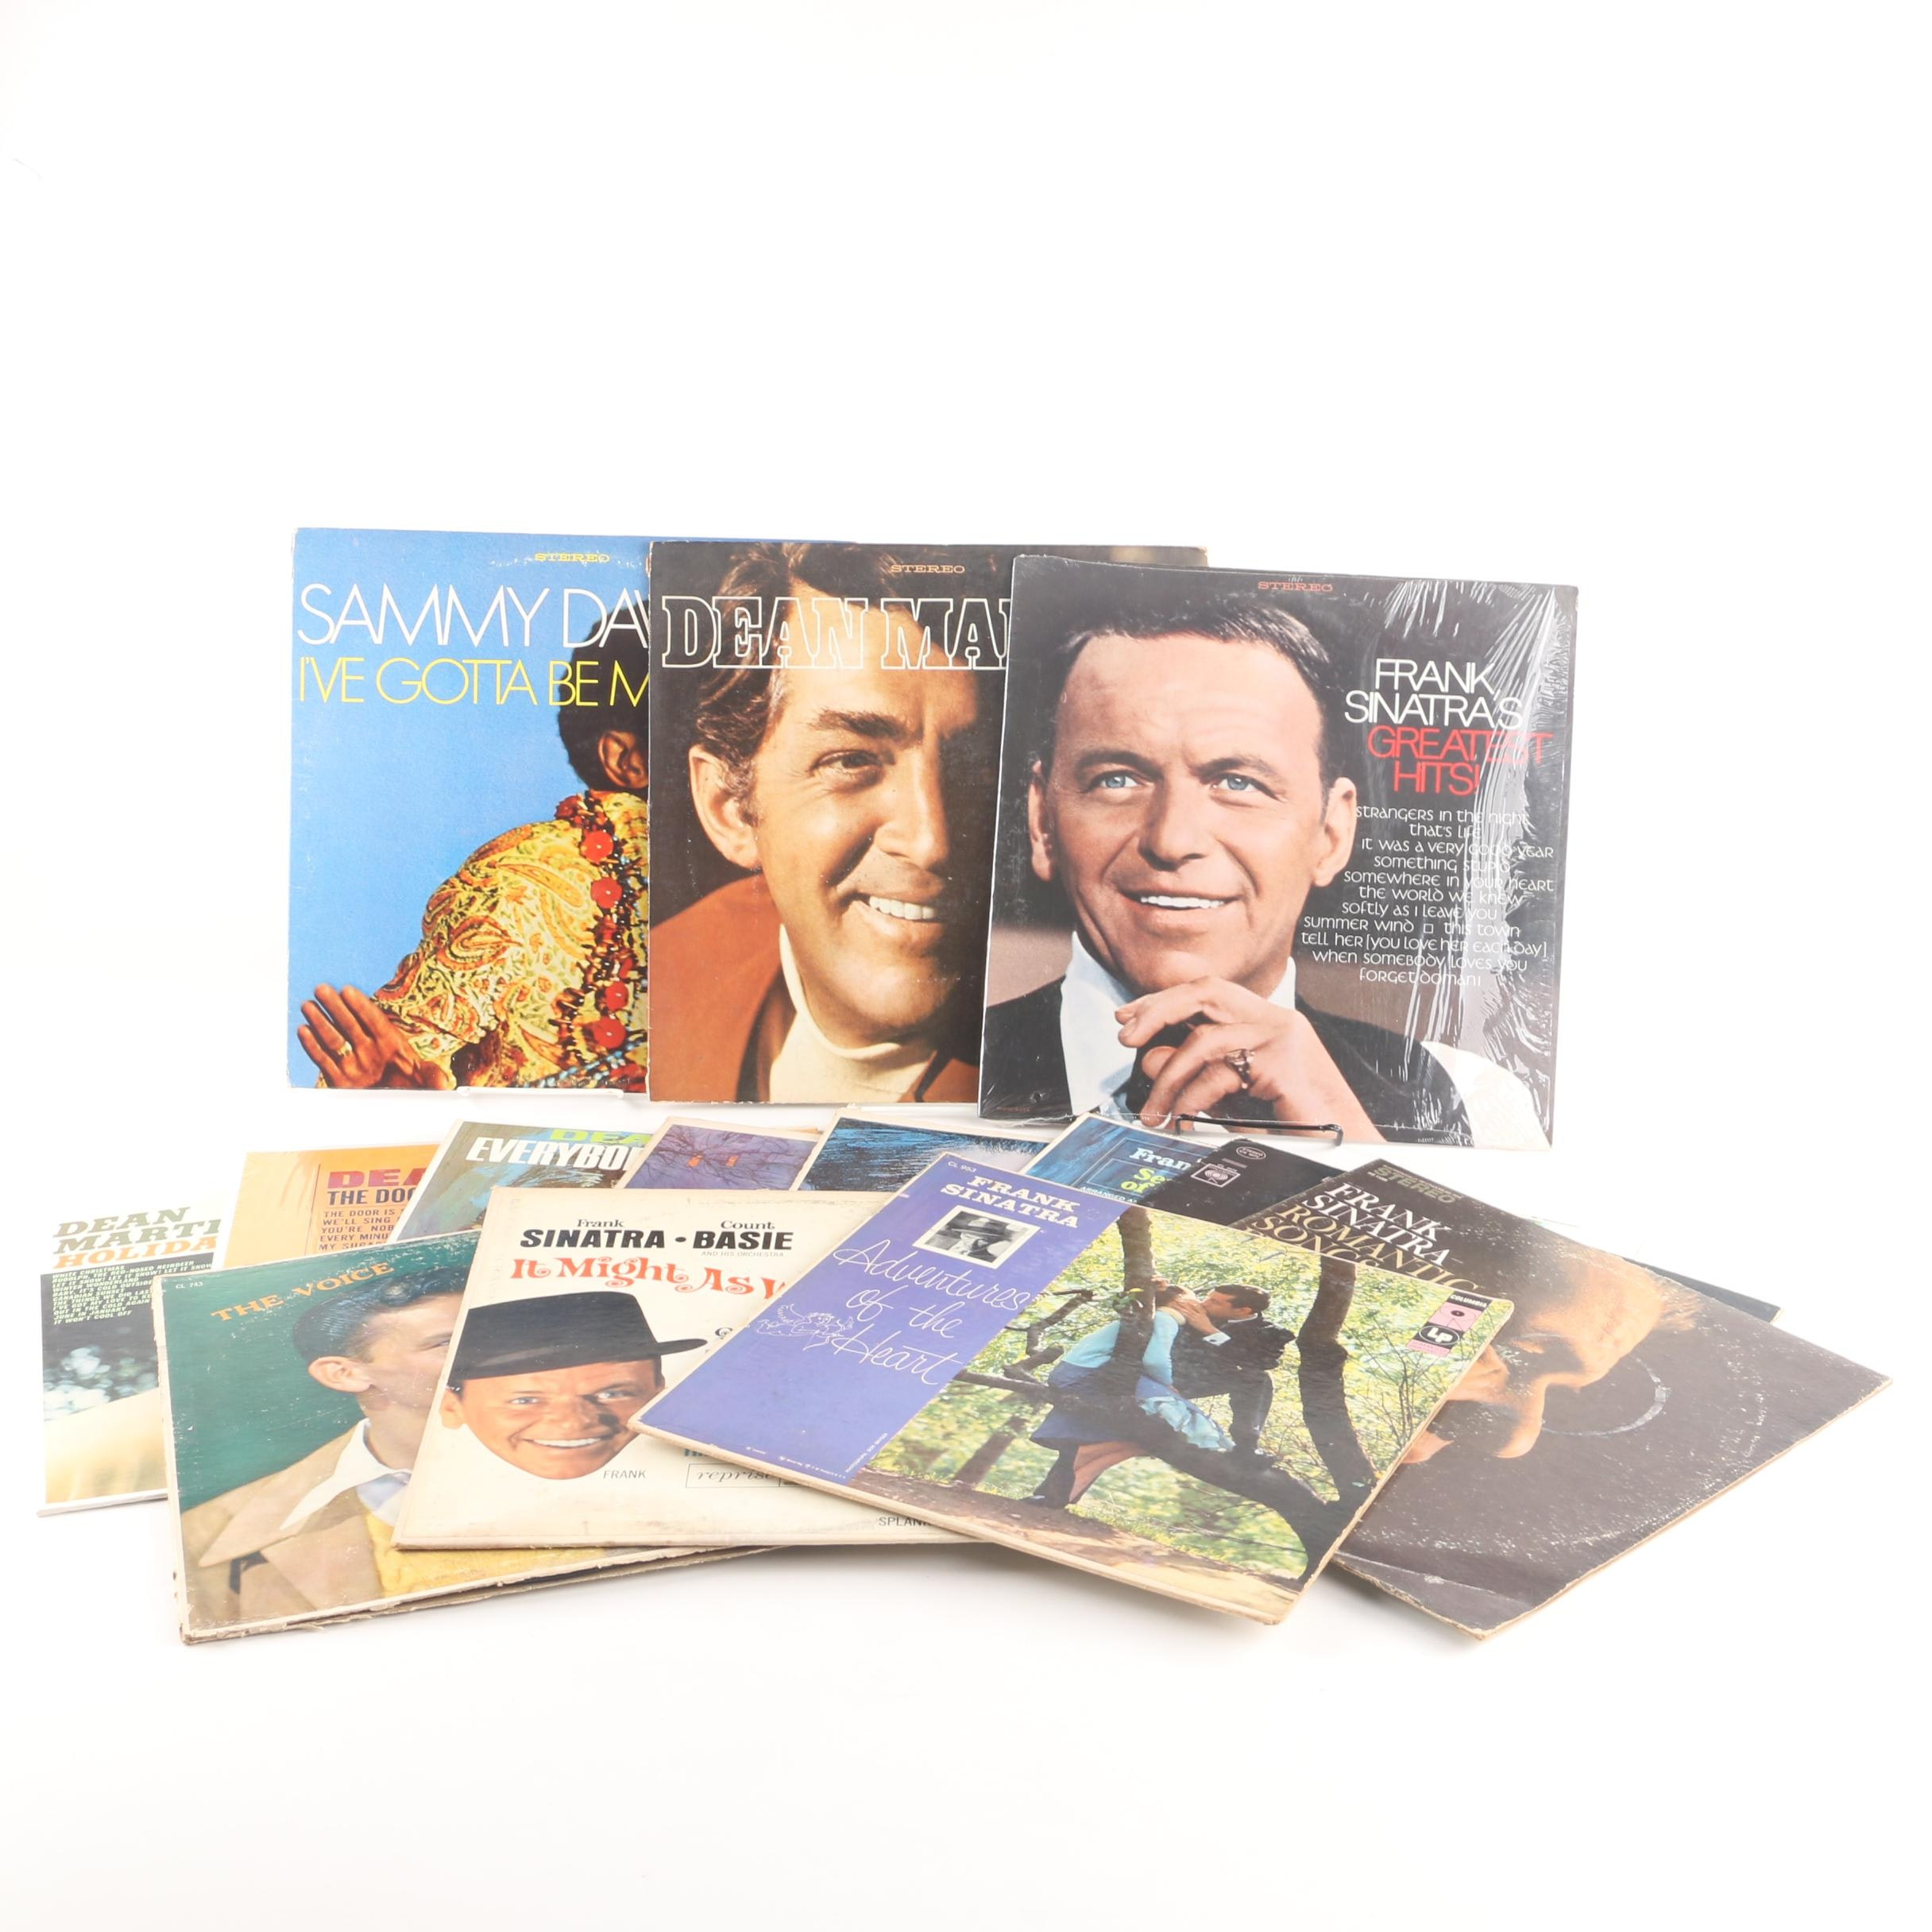 Vintage Records from Frank Sinatra, Dean Martin, and Sammy Davis Jr.